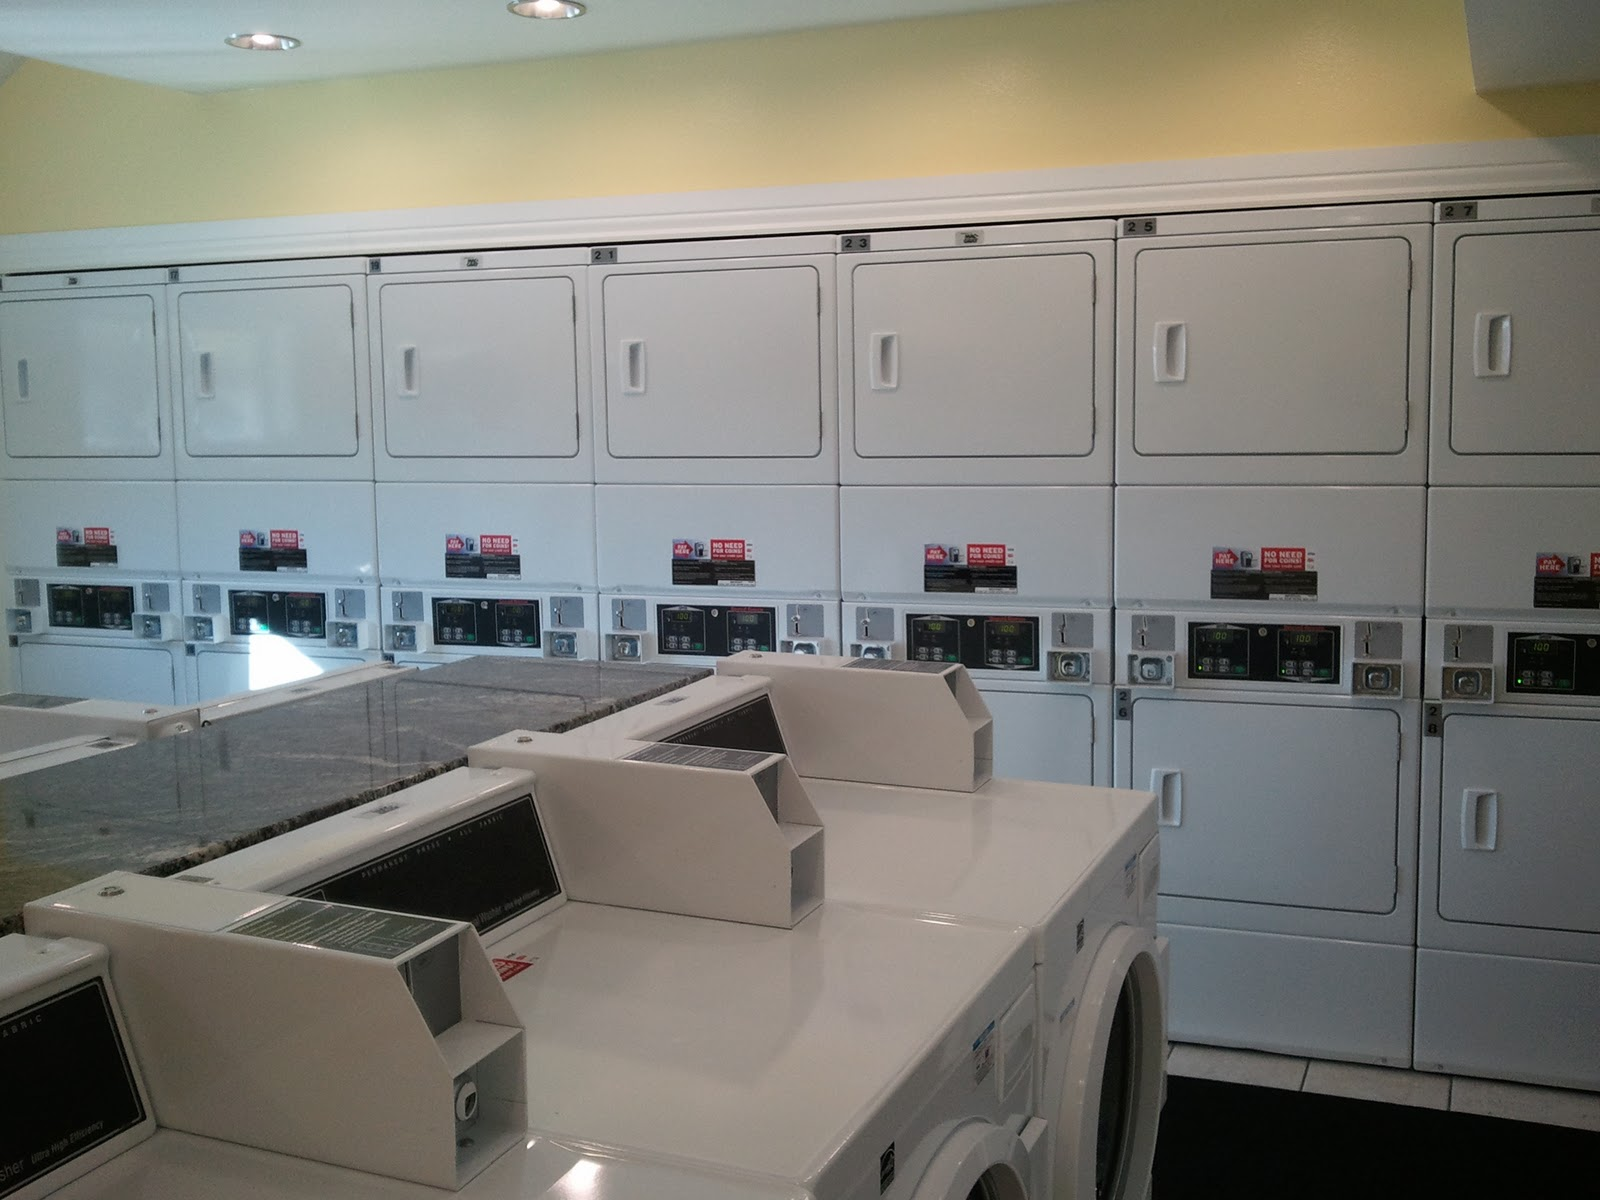 King Henry Apartments: New Laundry Room